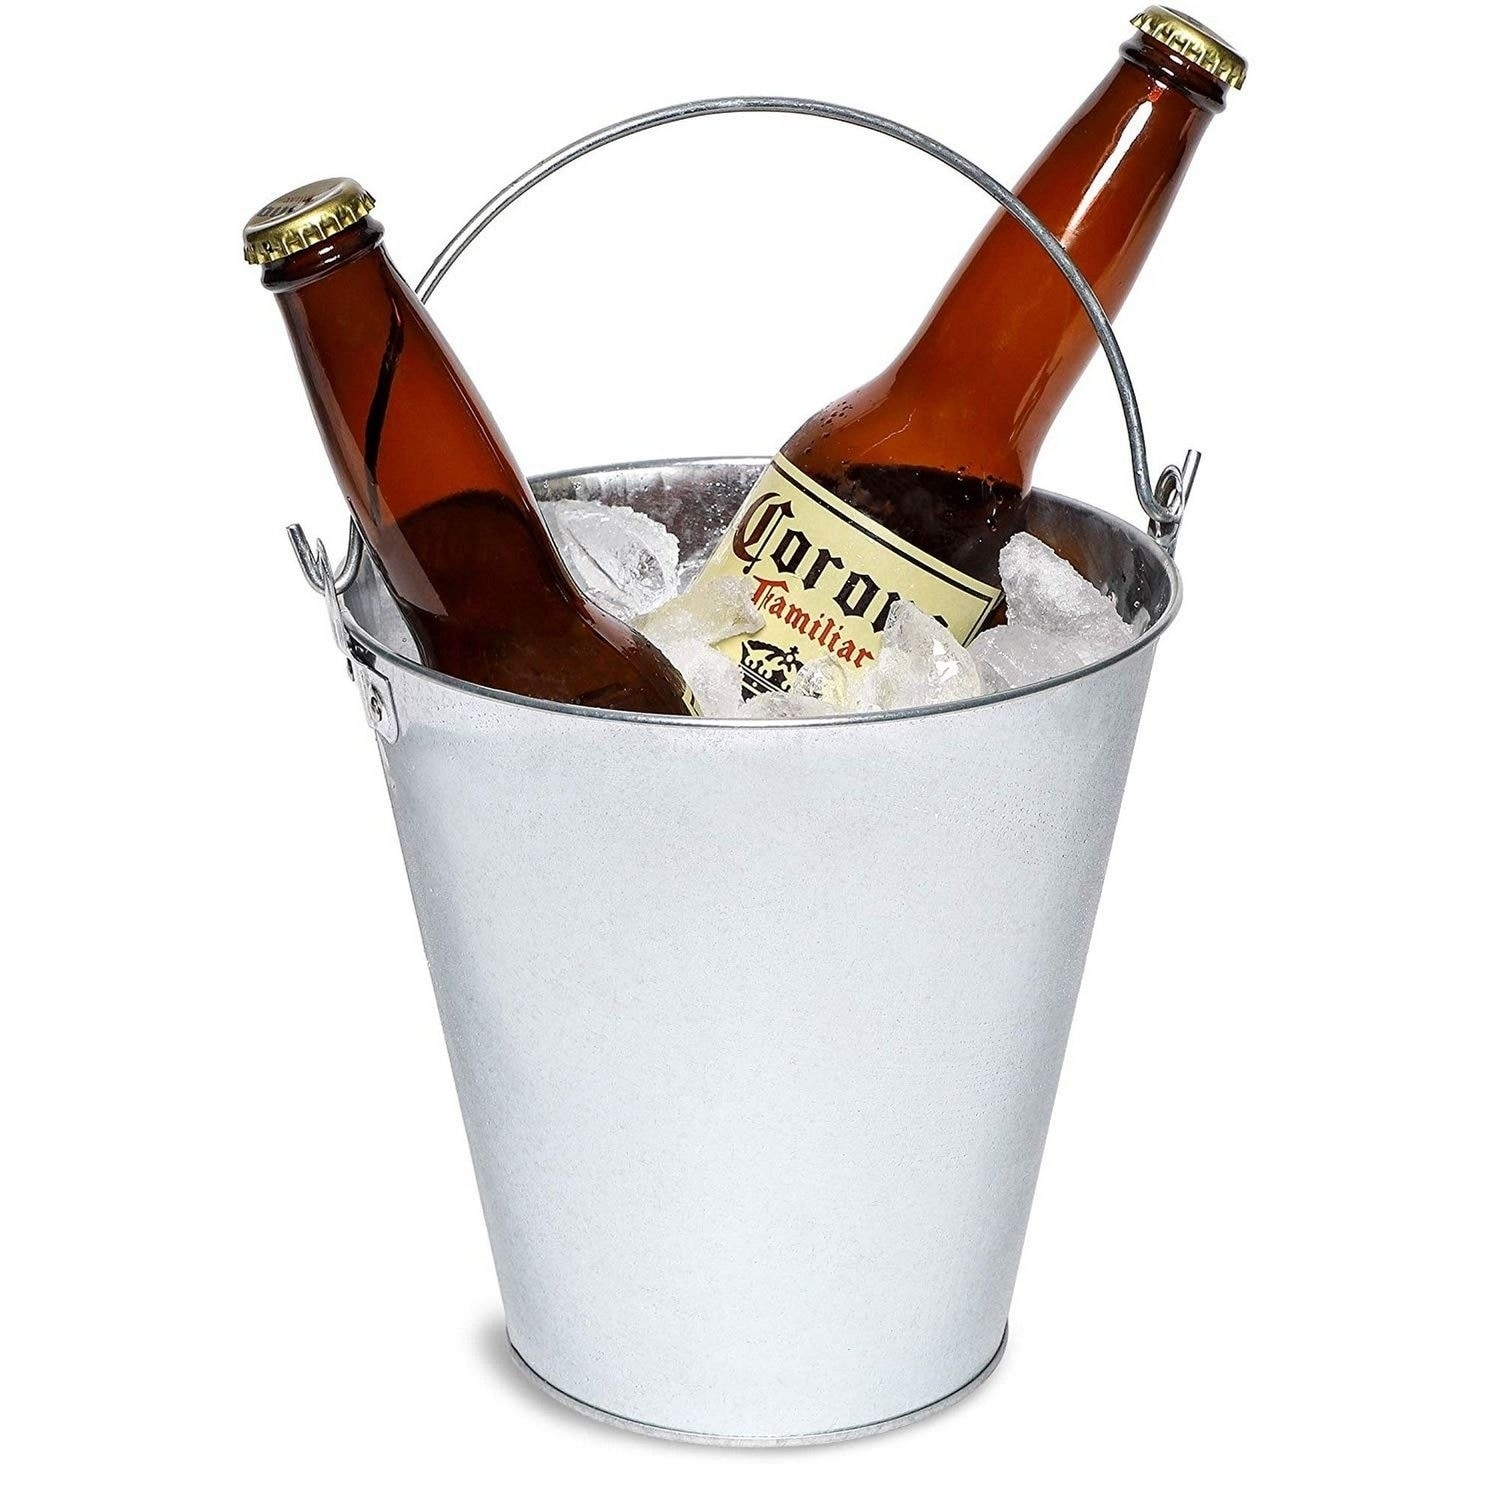 3 Pack Galvanized Metal Ice Bucket Pails For Beer Drinks Party Decorations 7 Overstock 30114781